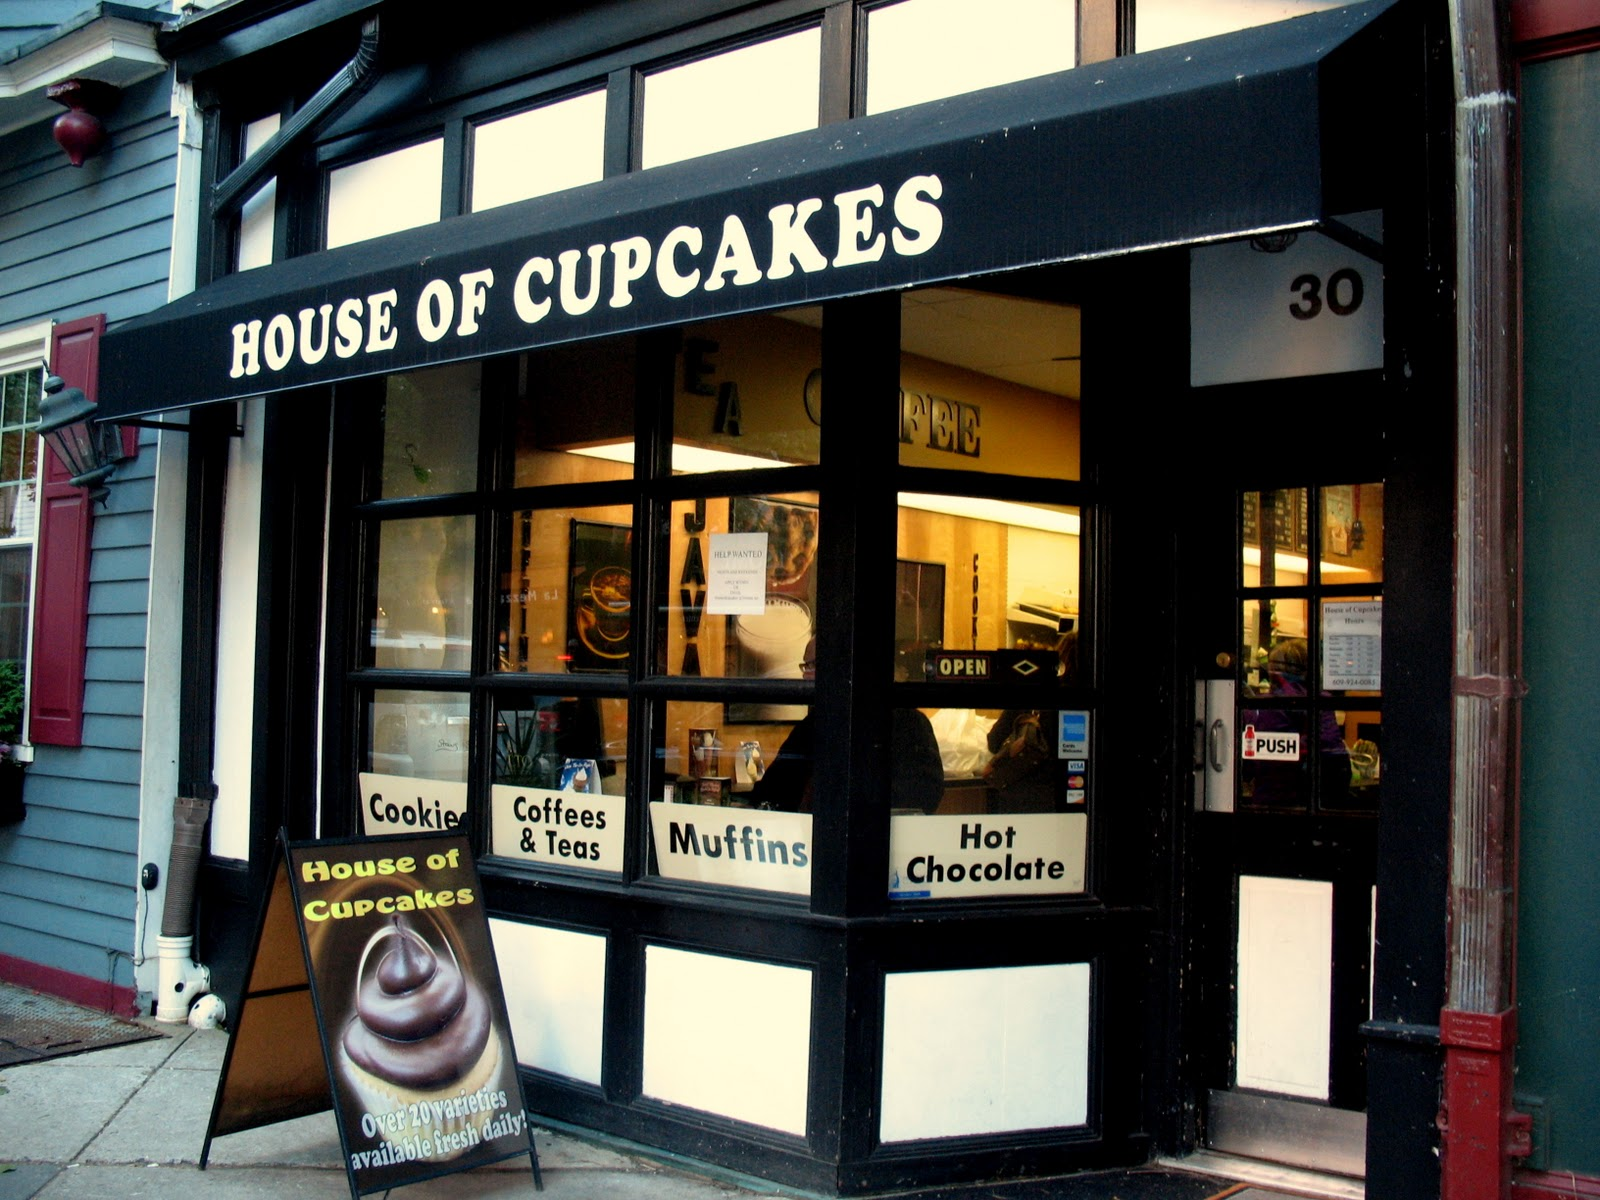 House of Cupcakes.